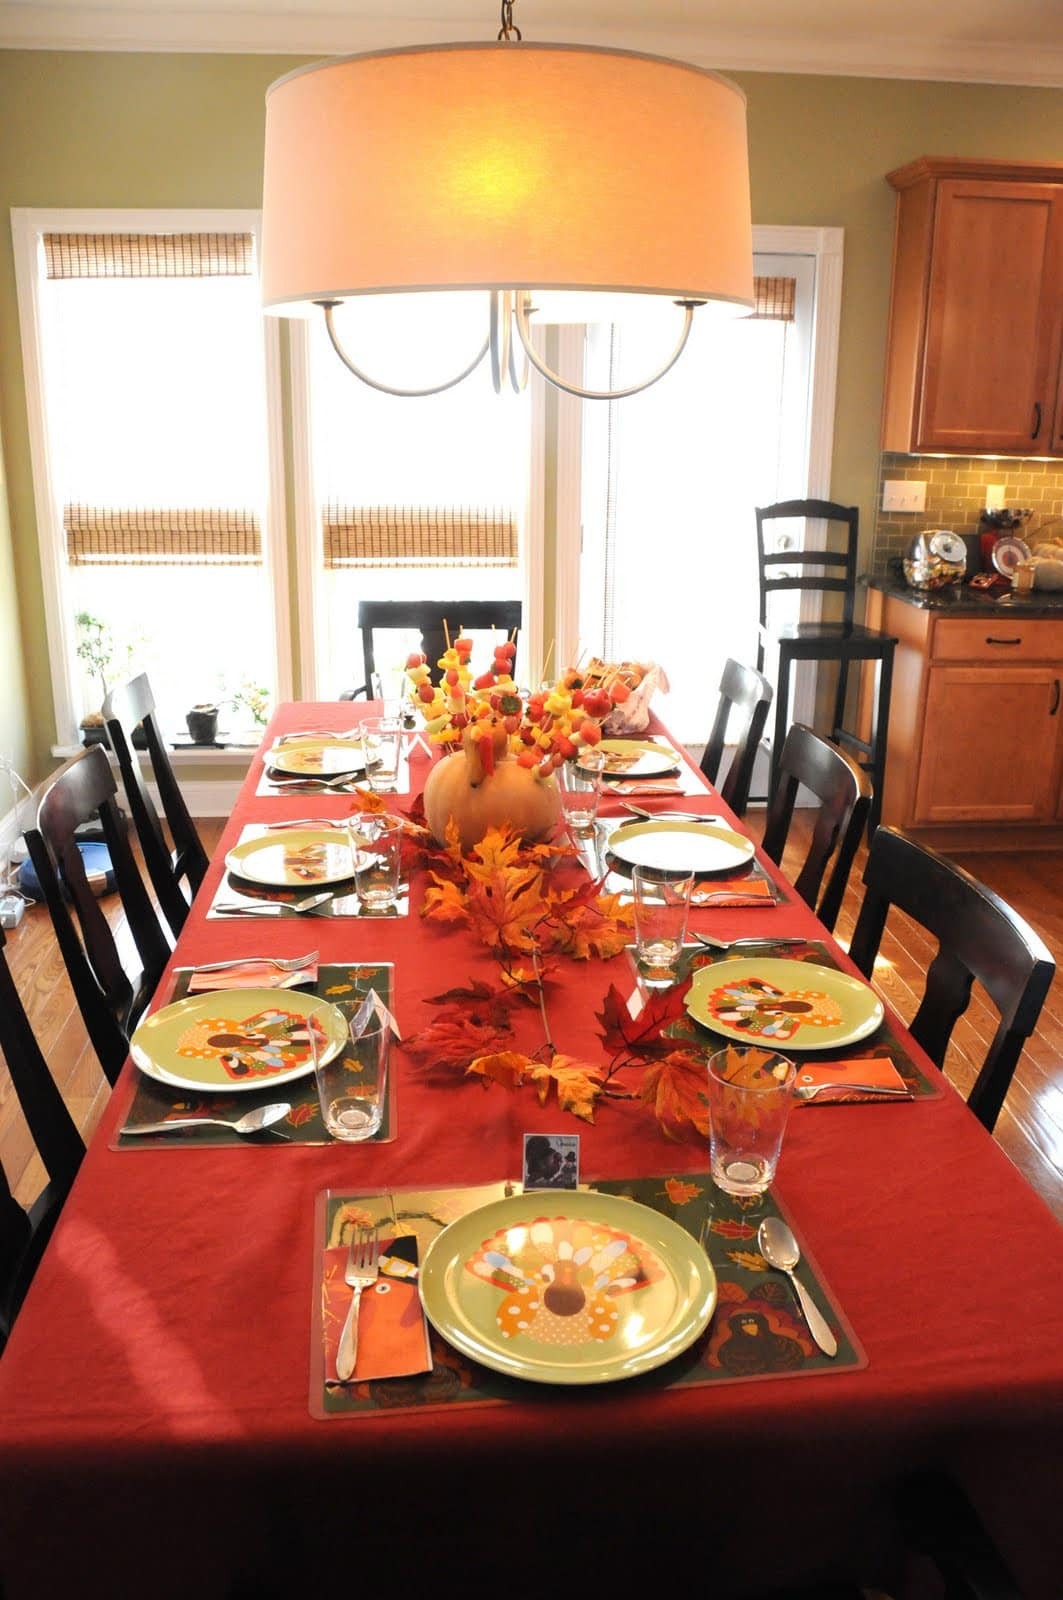 Thanksgiving Dinner Table Decorations  Thanksgiving Decor The Polkadot Chair